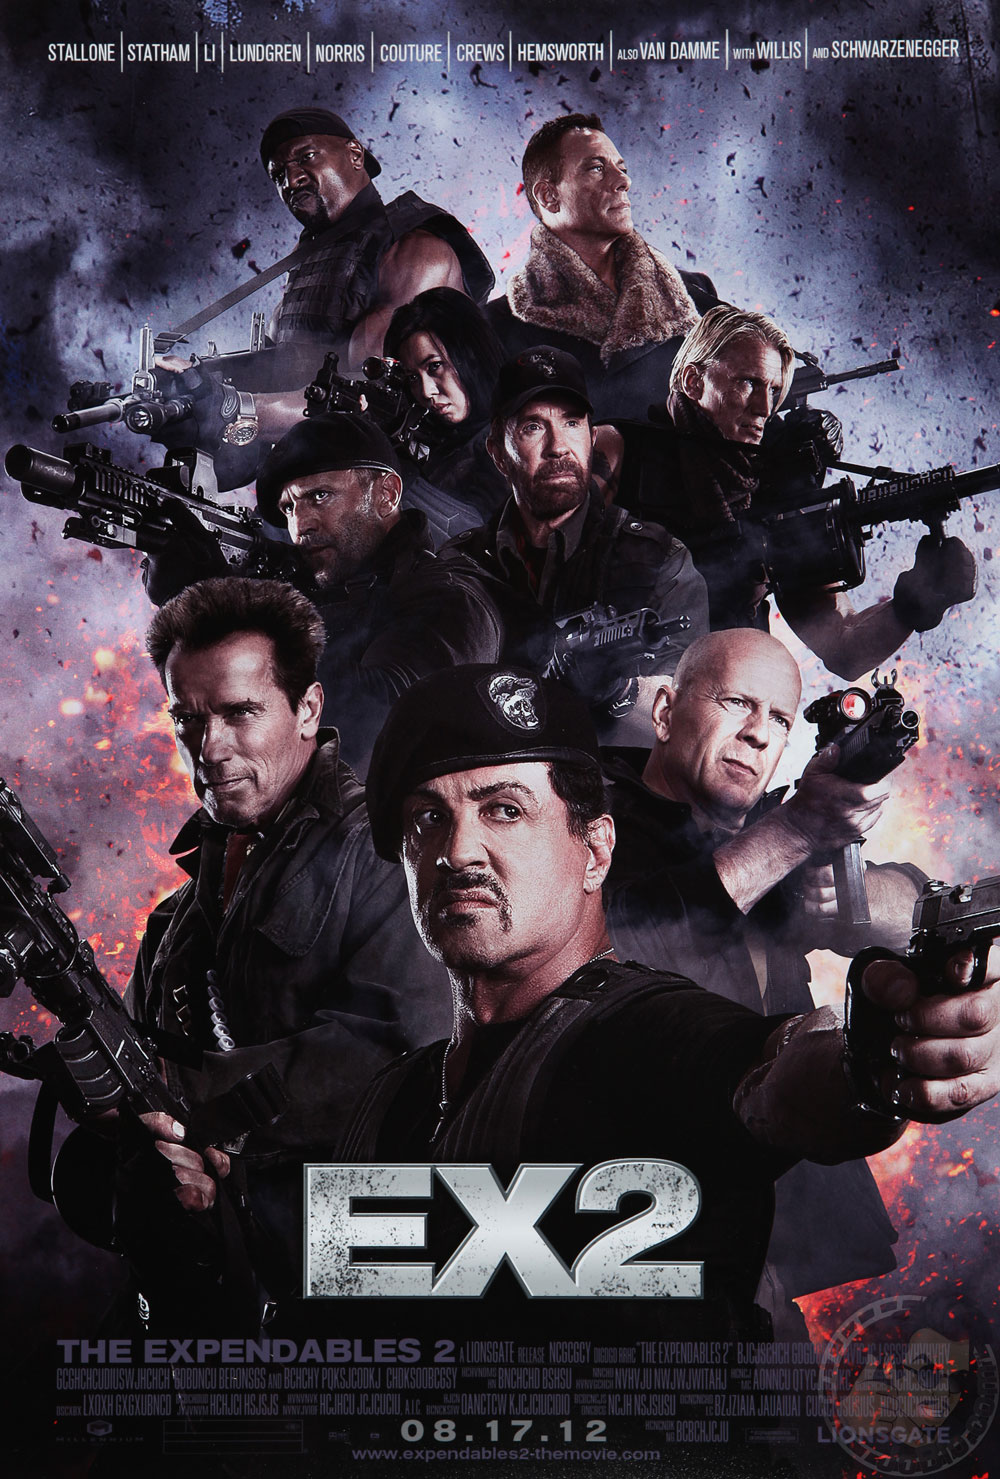 http://collider.com/wp-content/uploads/the-expendables-2-poster.jpg